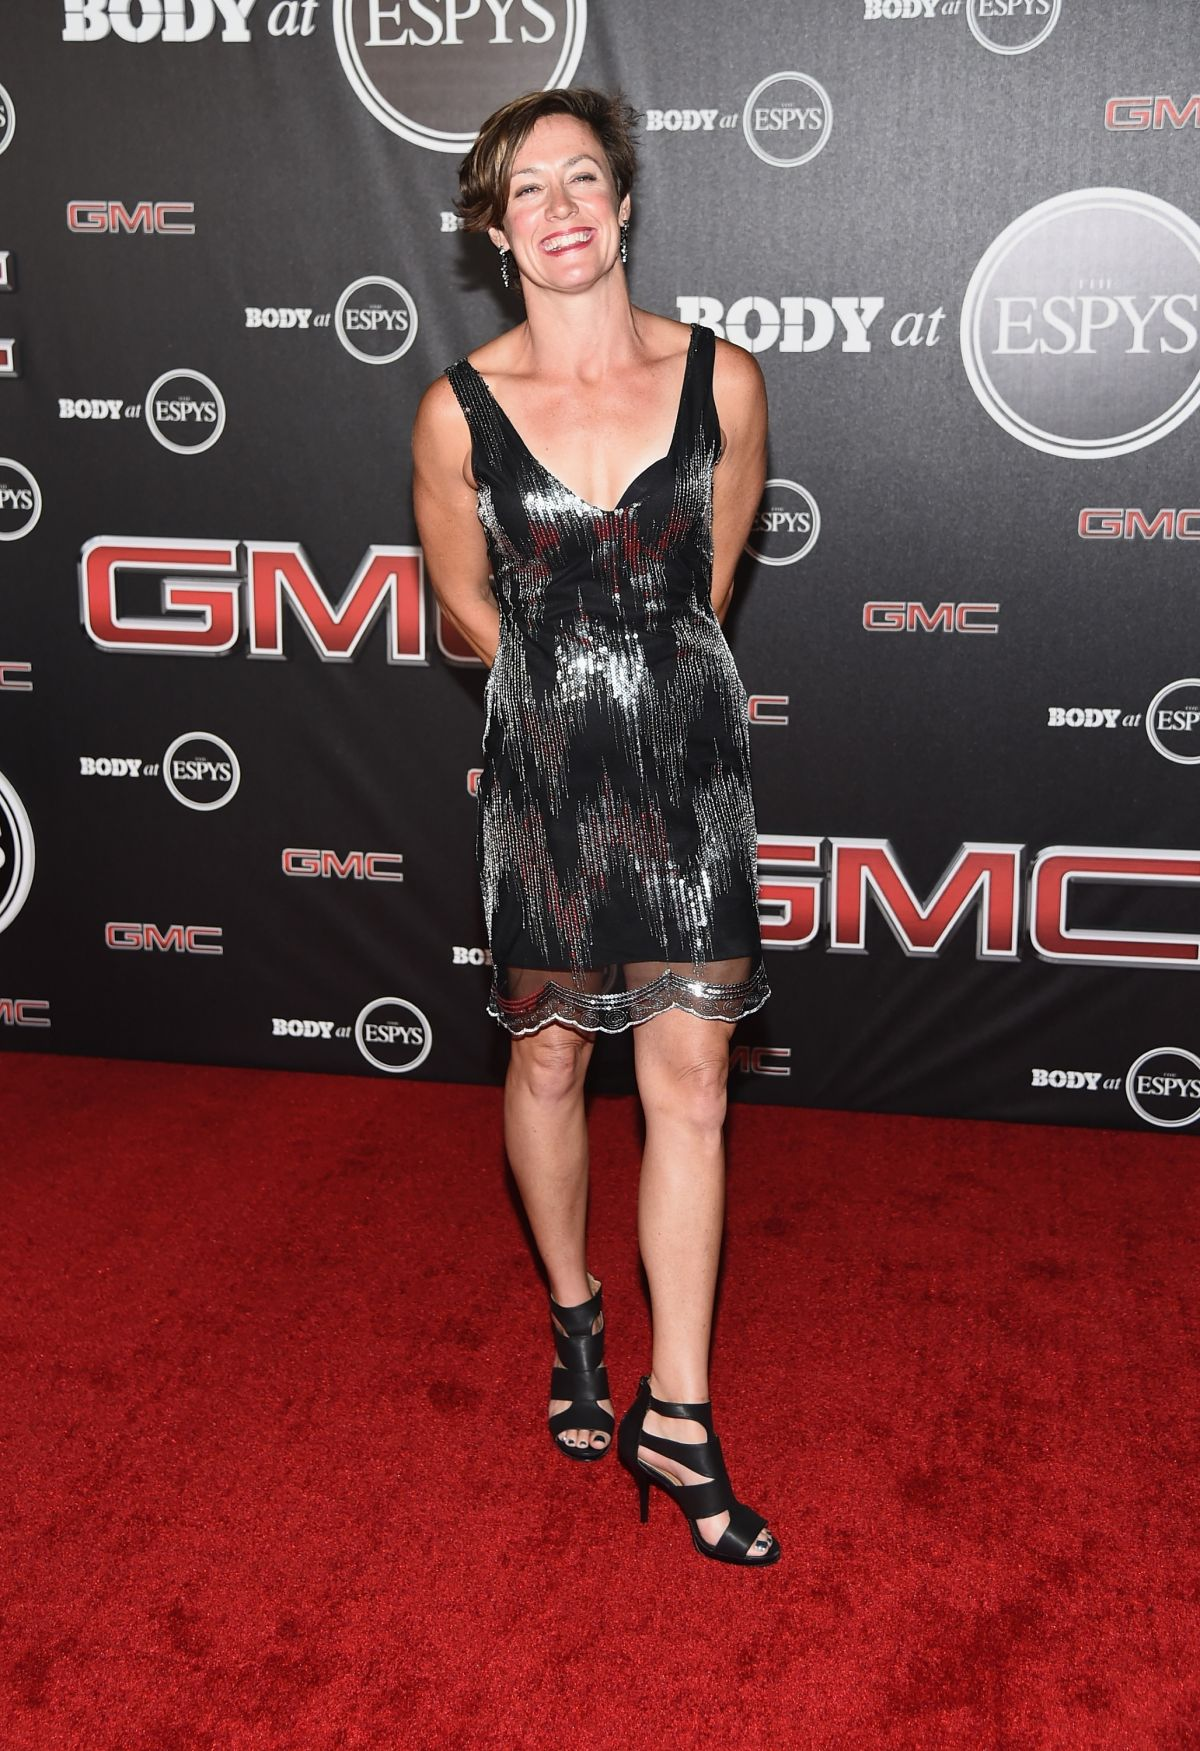 GINGER HUBER at ESPN Presents Body at ESPYS